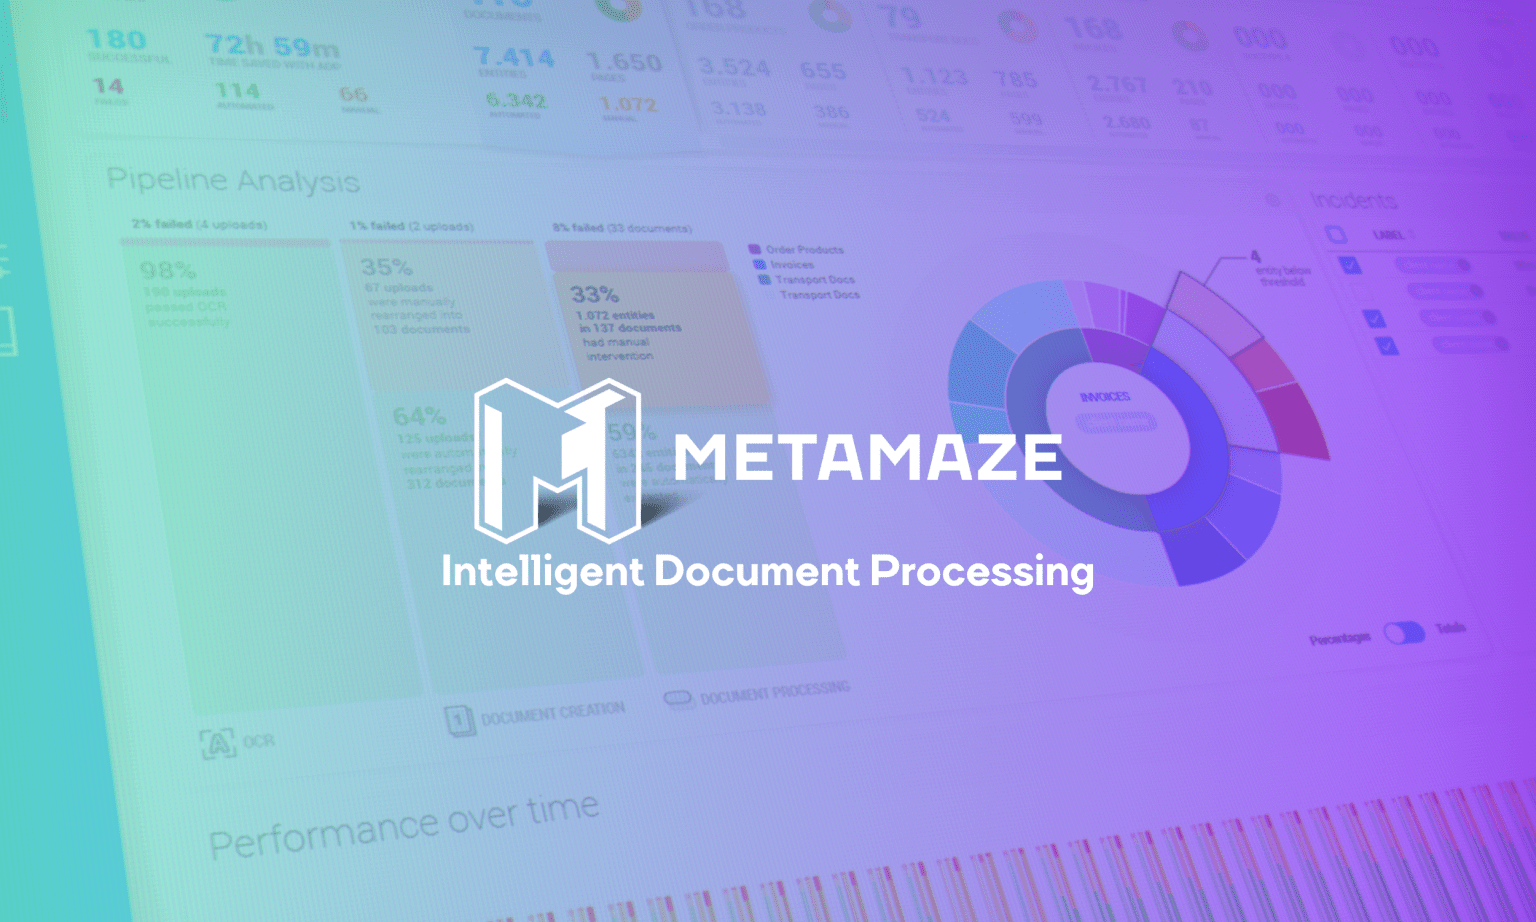 Metamaze Intelligent Document Processing text overlayed on screenshot of dashboards with analytics